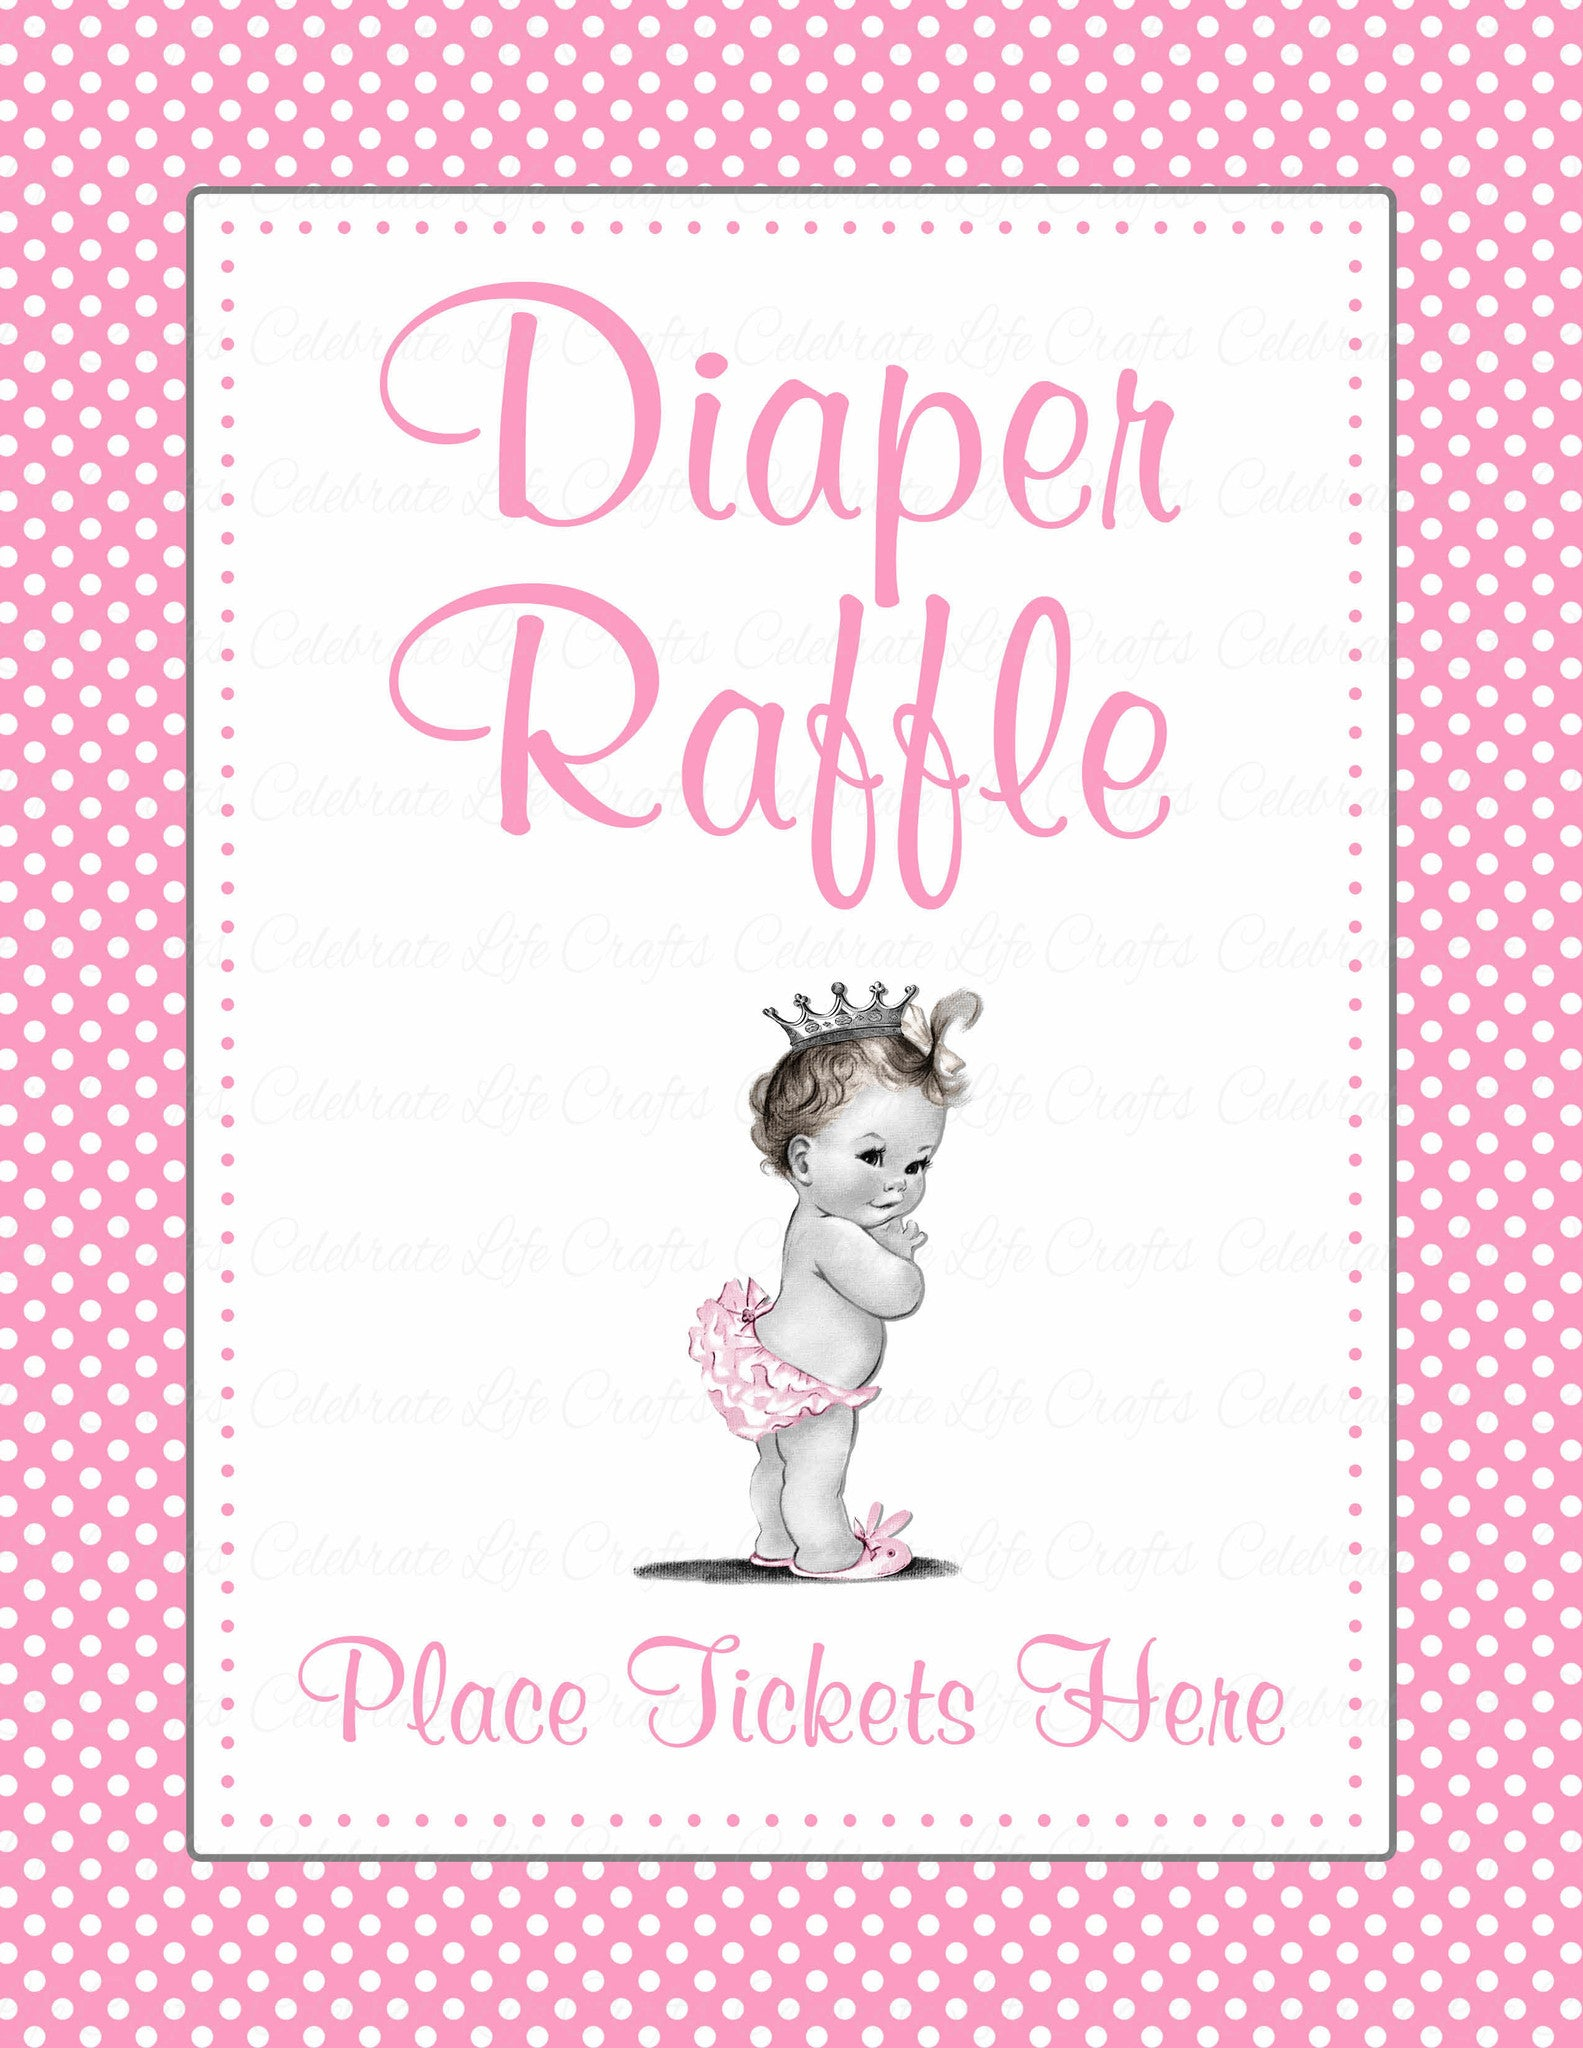 Diaper Raffle Tickets   Printable Download   Pink Polka Baby Shower  Invitation Inserts   B23001.